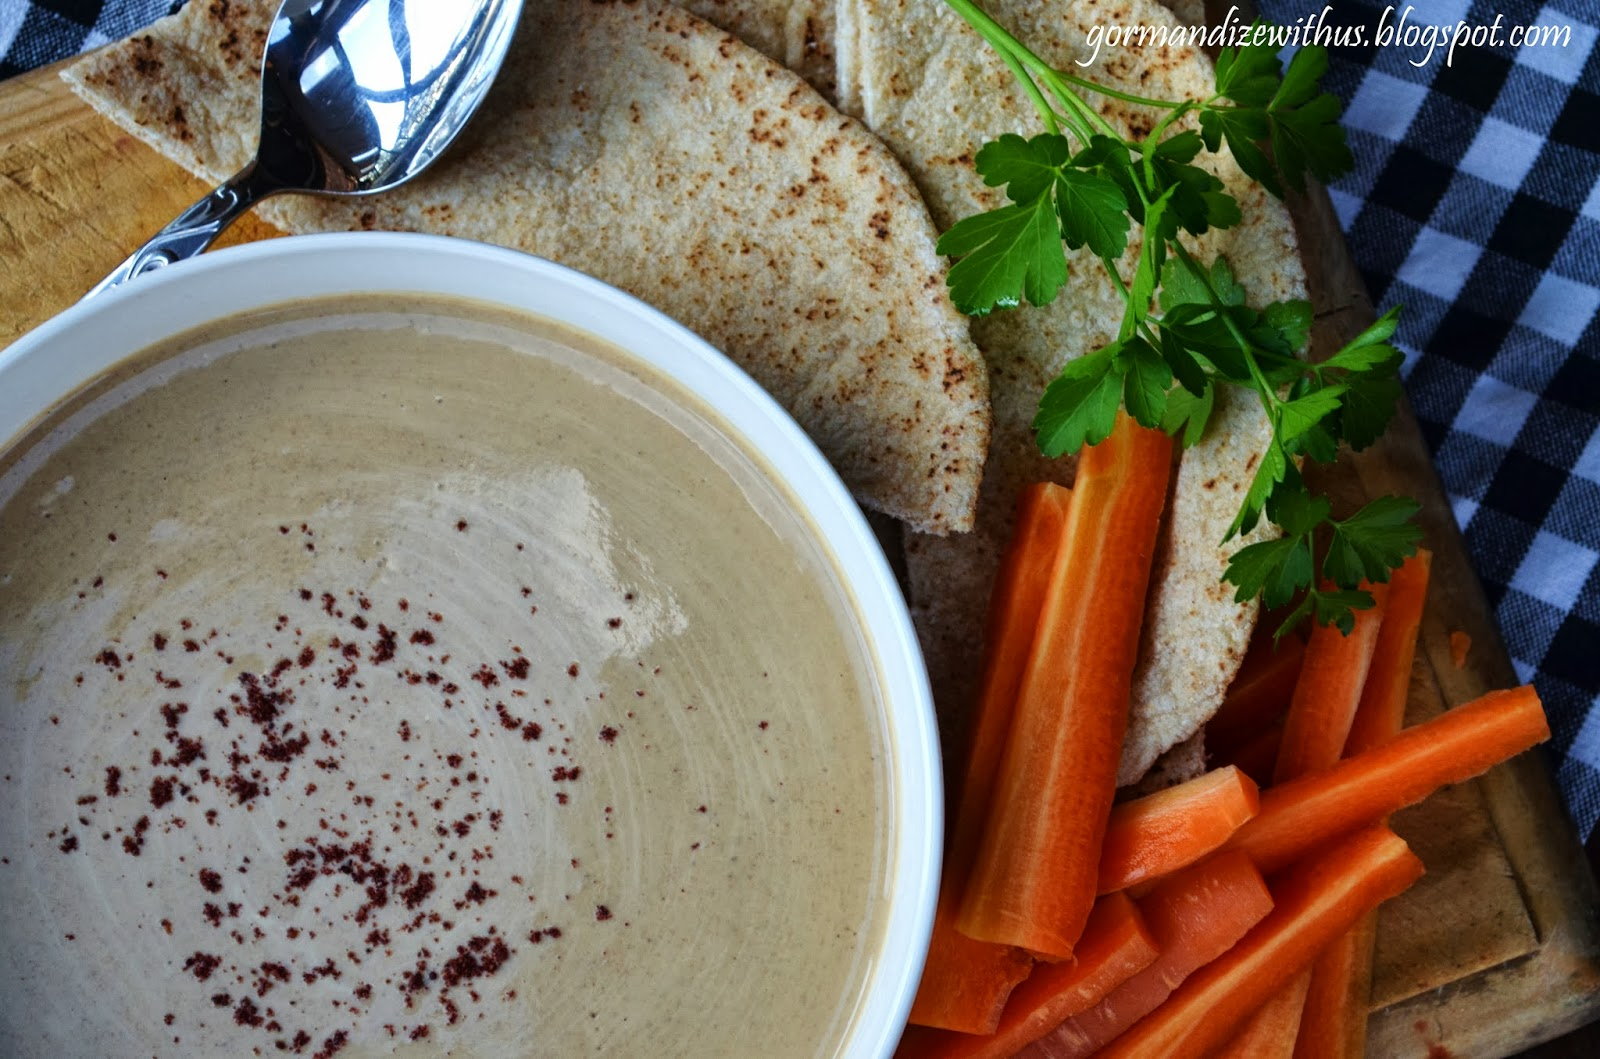 Smear It On Your Veggie Burgers Drizzle It Over Your Tofu Or Just Use It As A Dip With Fresh Chopped Veggies And Crusty Bread Yum Creamy Tahini Sauce